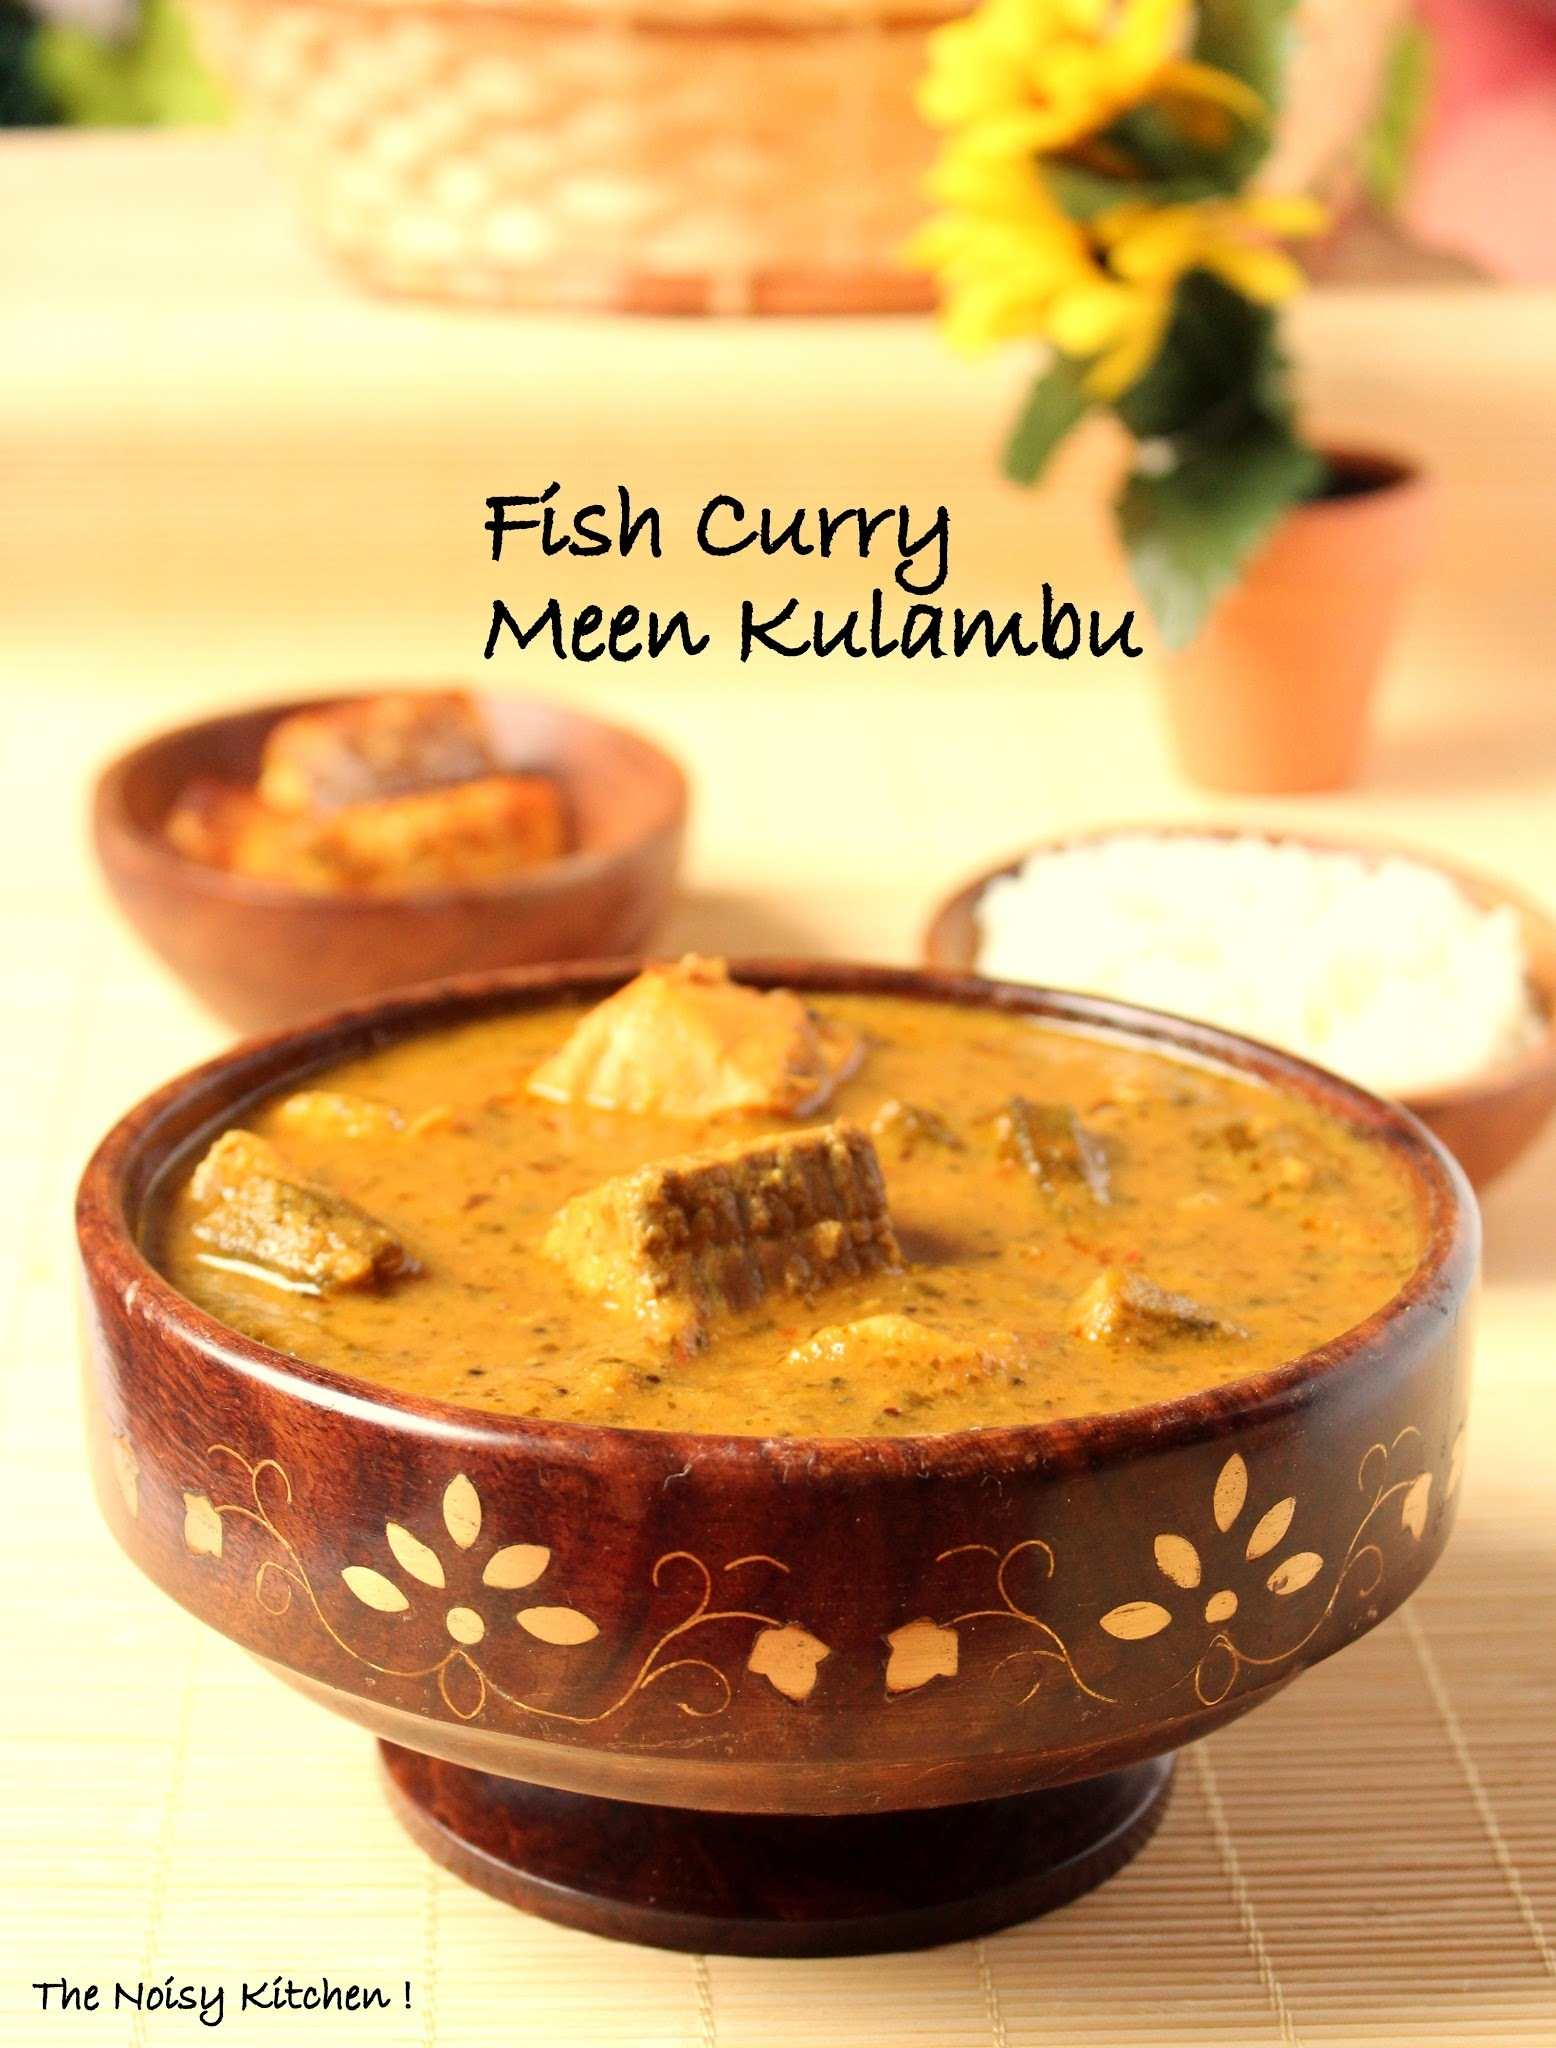 Fish curry - Meen Kulambu